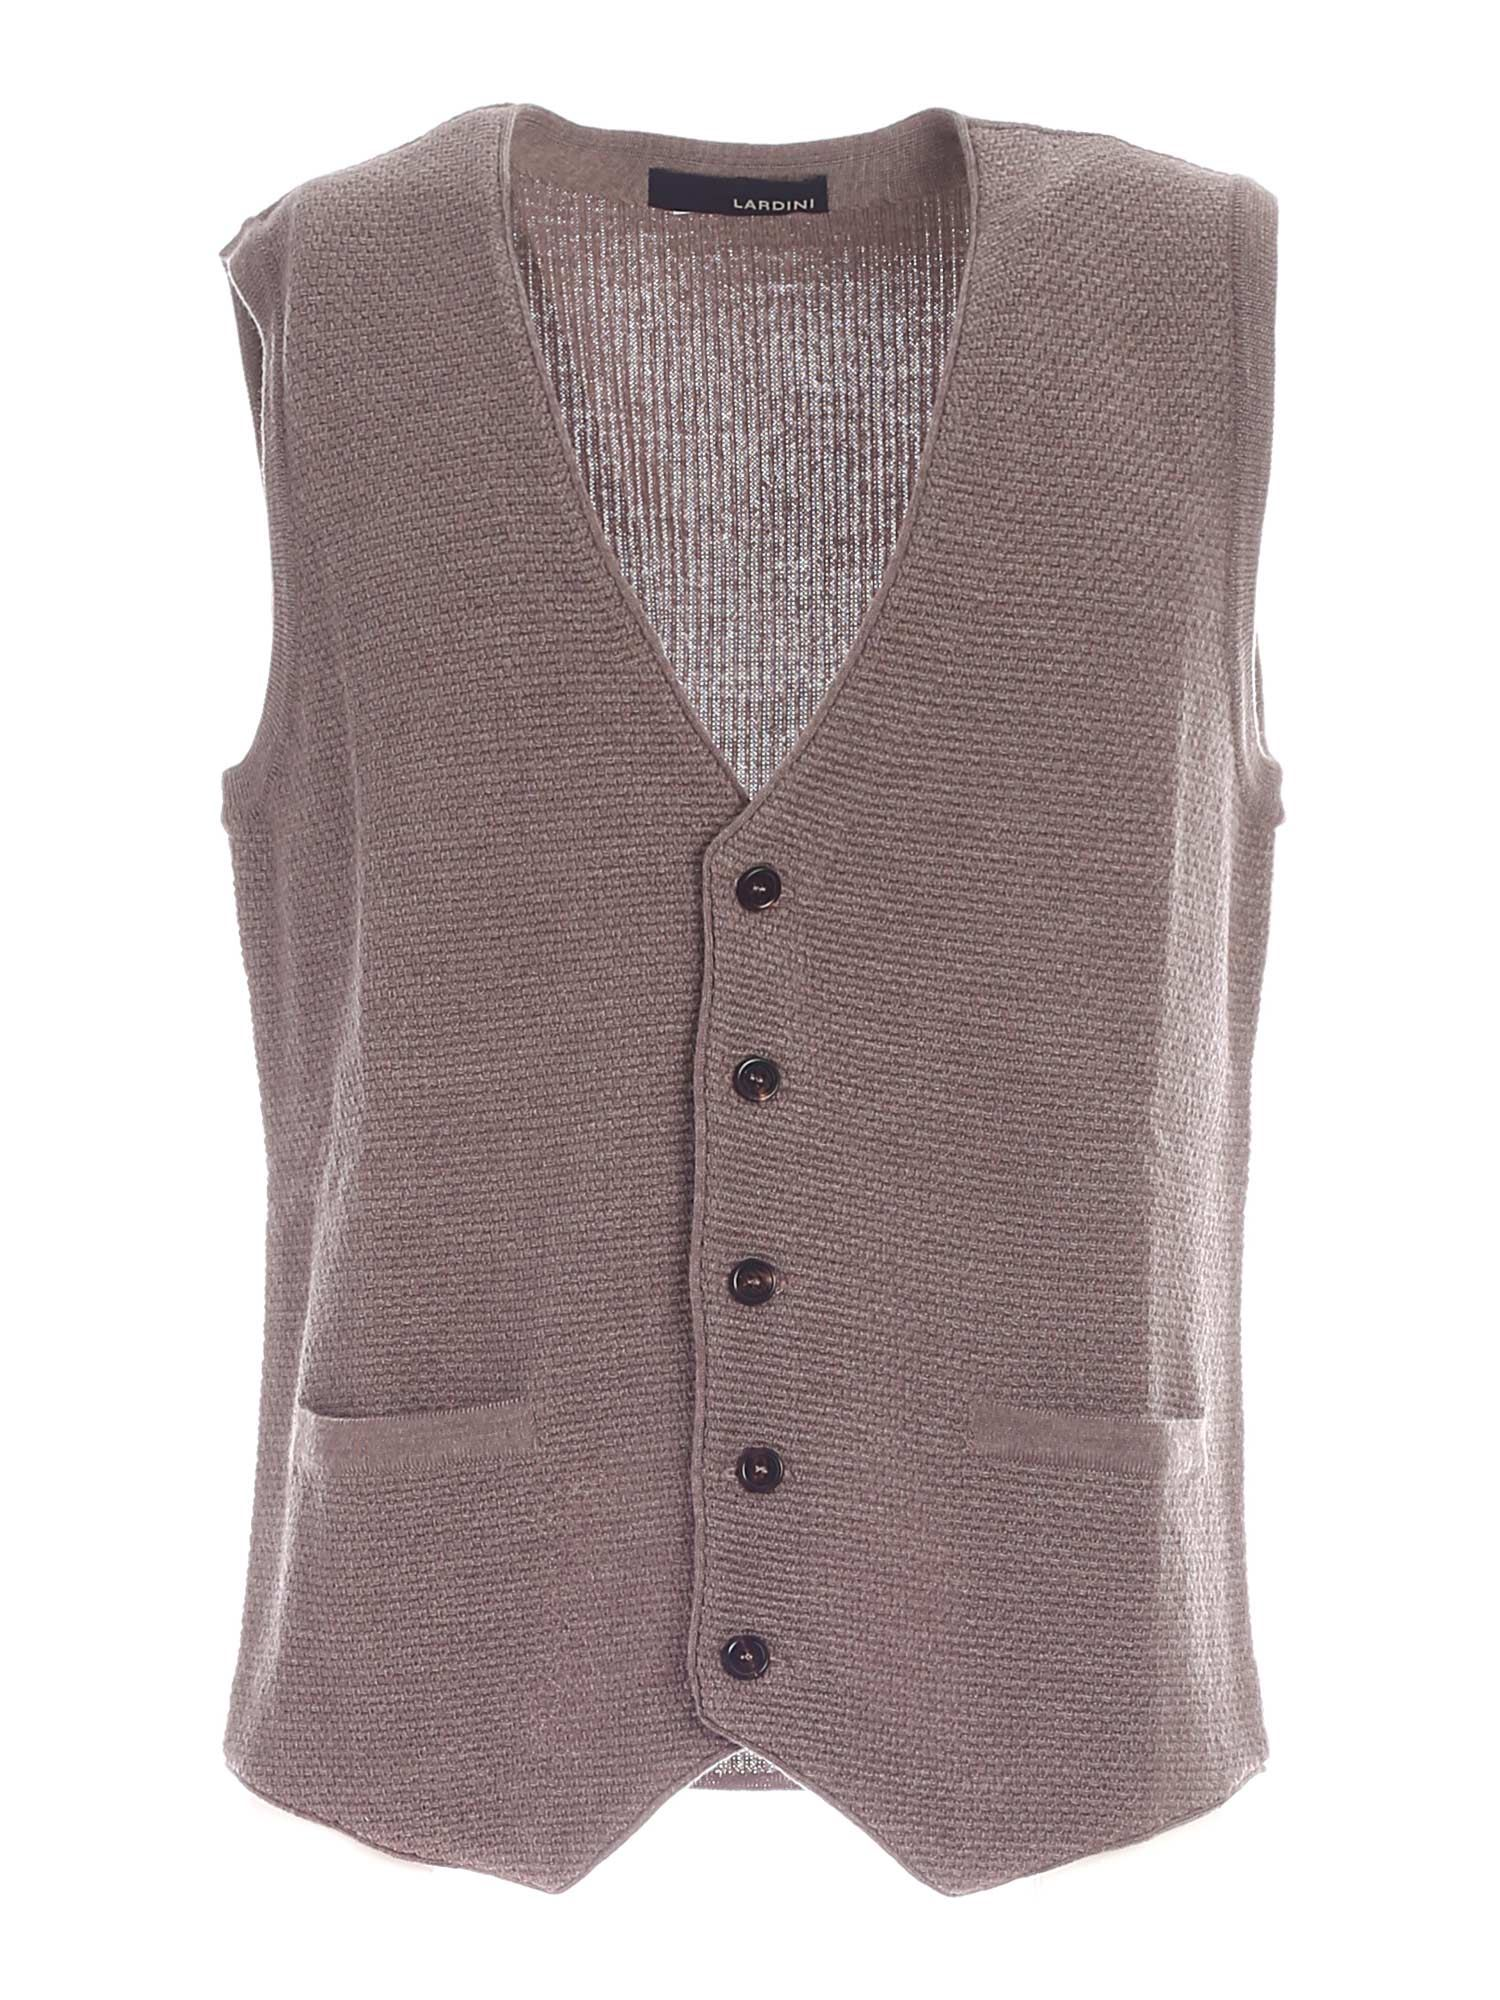 Lardini KNITTED VEST IN DOVE GREY COLOR